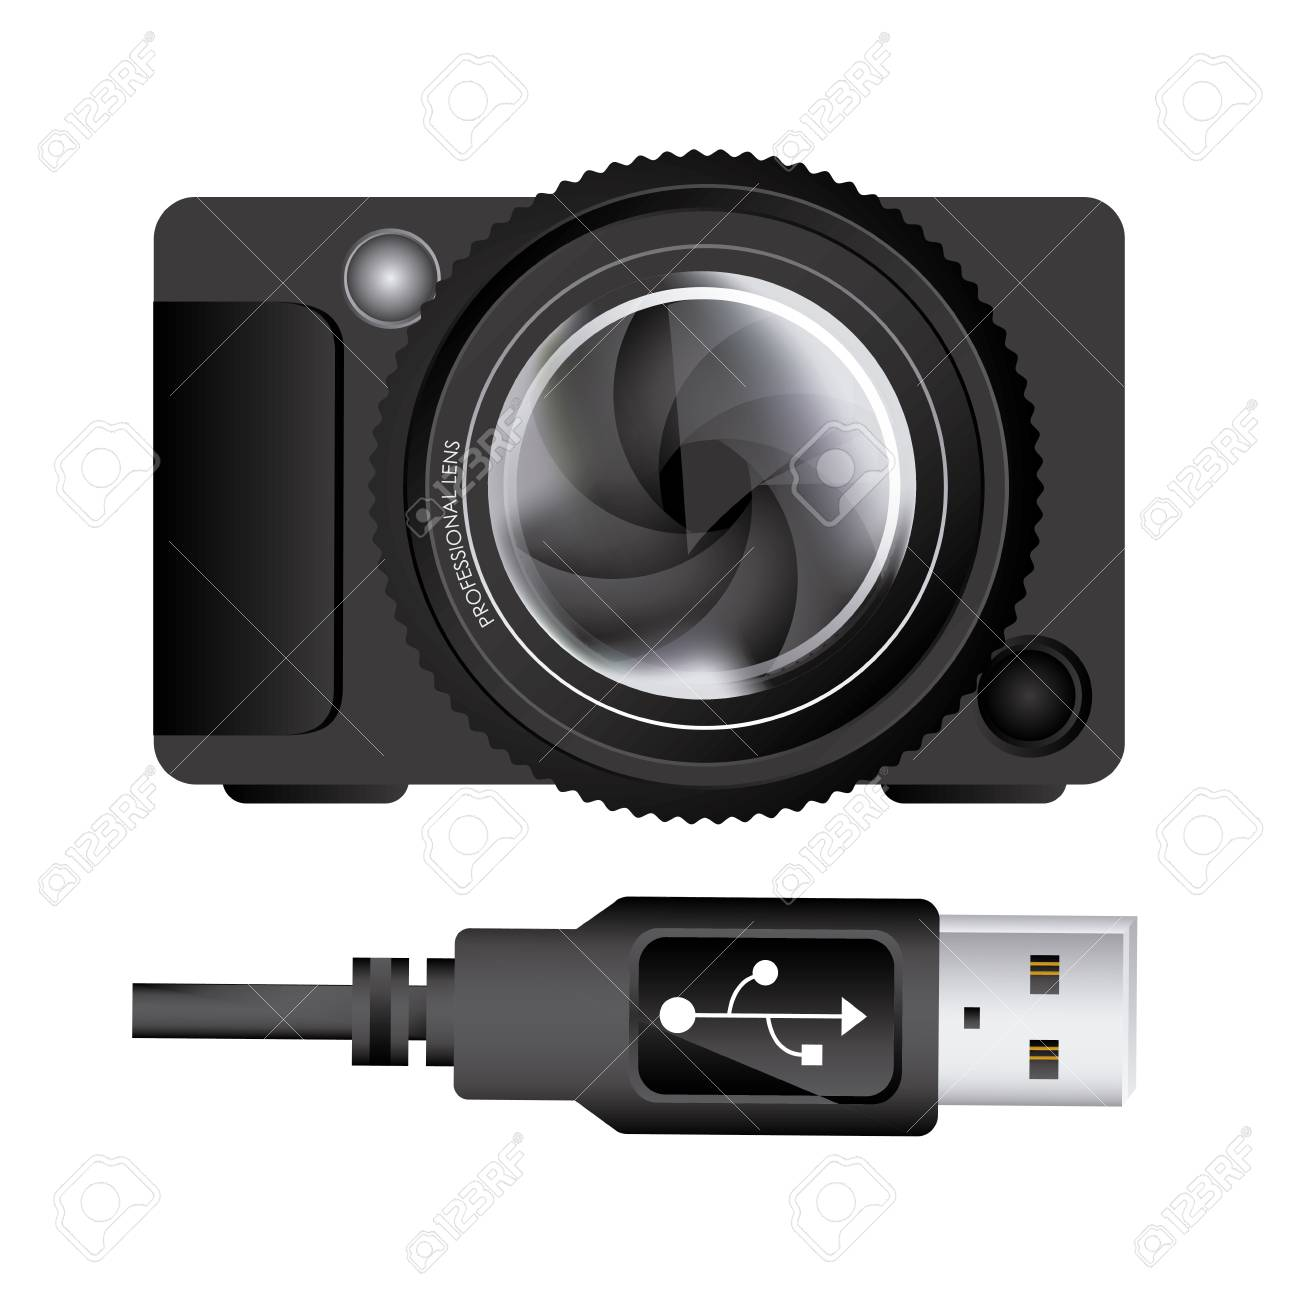 usb connection over white background vector illustration - 21295460